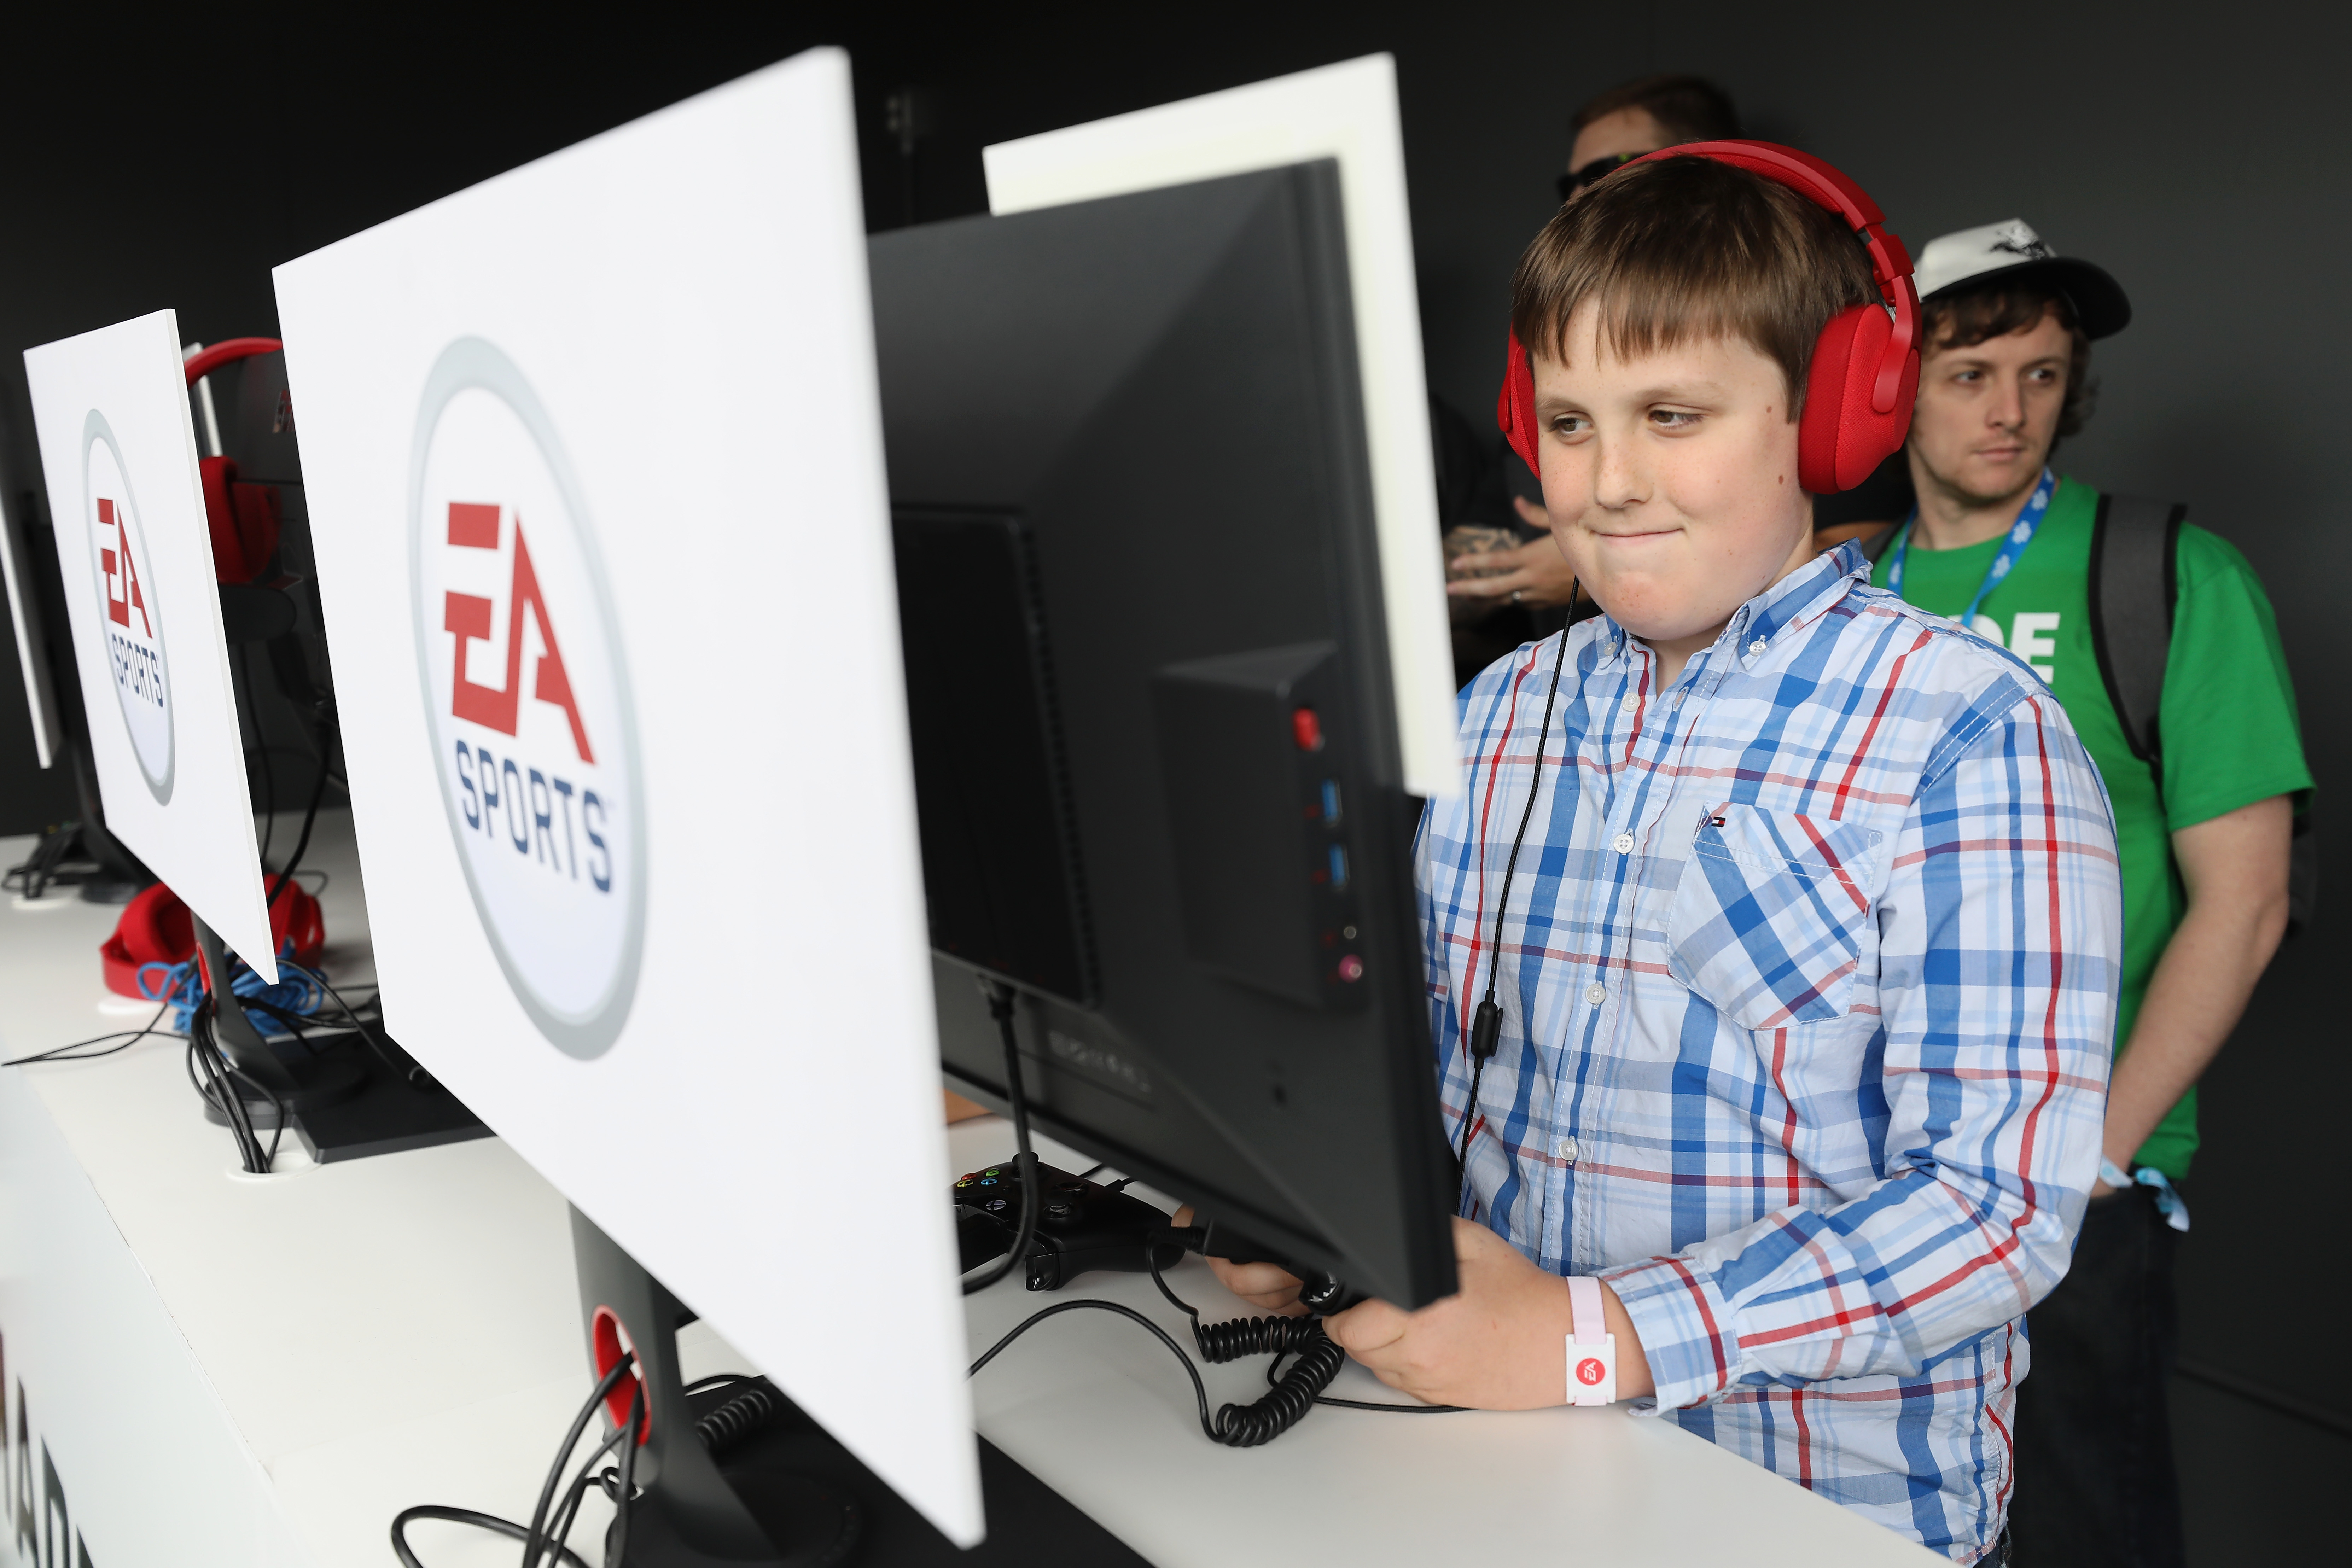 8b2032f0b Josh Cherniss of Los Angeles plays EA Sports Madden NFL 18 during the Electronic  Arts EA Play event at the Hollywood Palladium on June 10